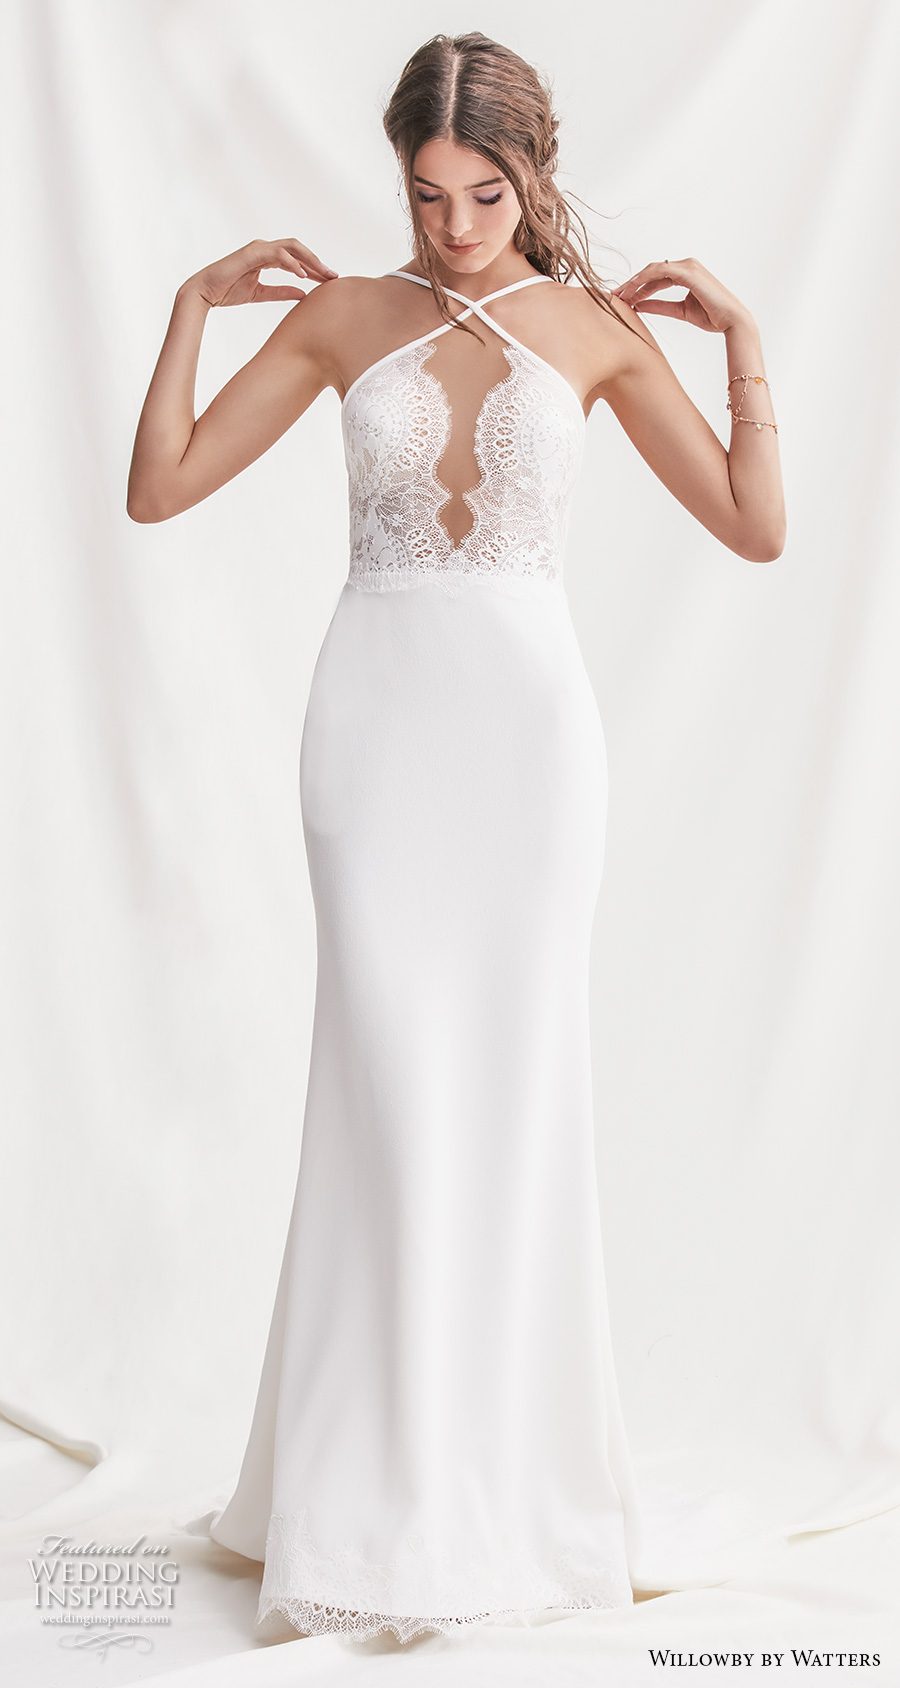 willowby by watters spring 2019 bridal sleeveless halter neck keyhole neckline heavily embellished bodice elegant sheath wedding dress backless short train (14) mv